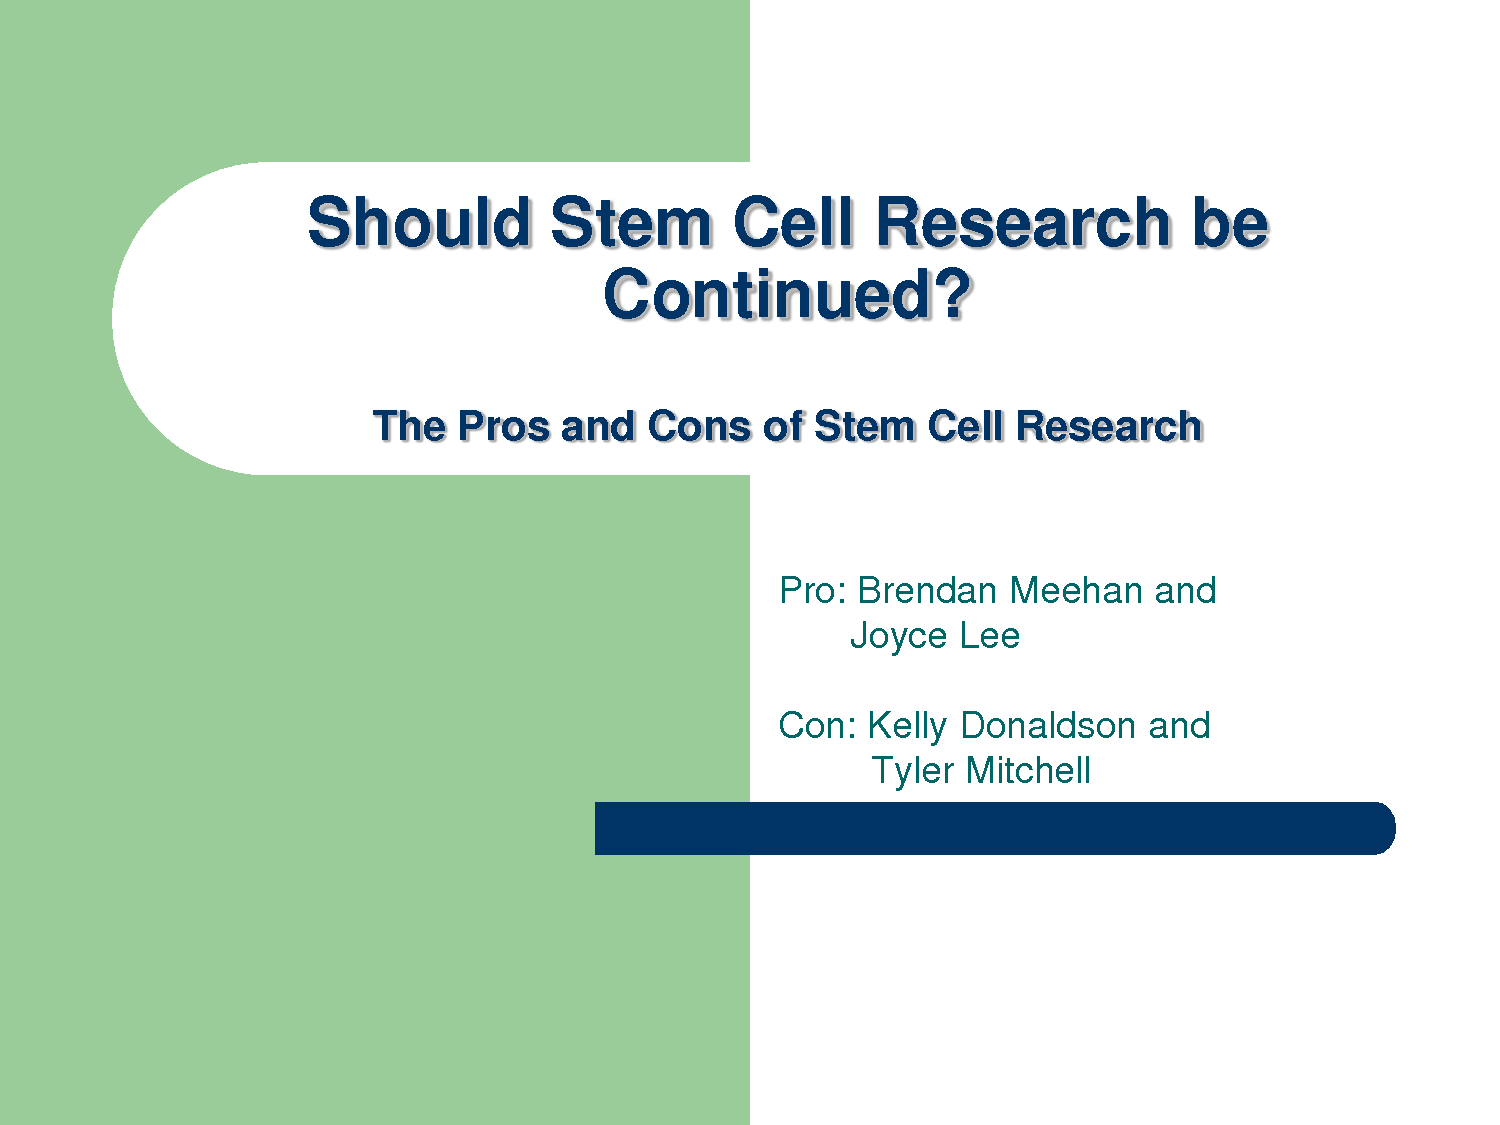 essay on stem cell research pros 91 121 113 106 essay on stem cell research pros